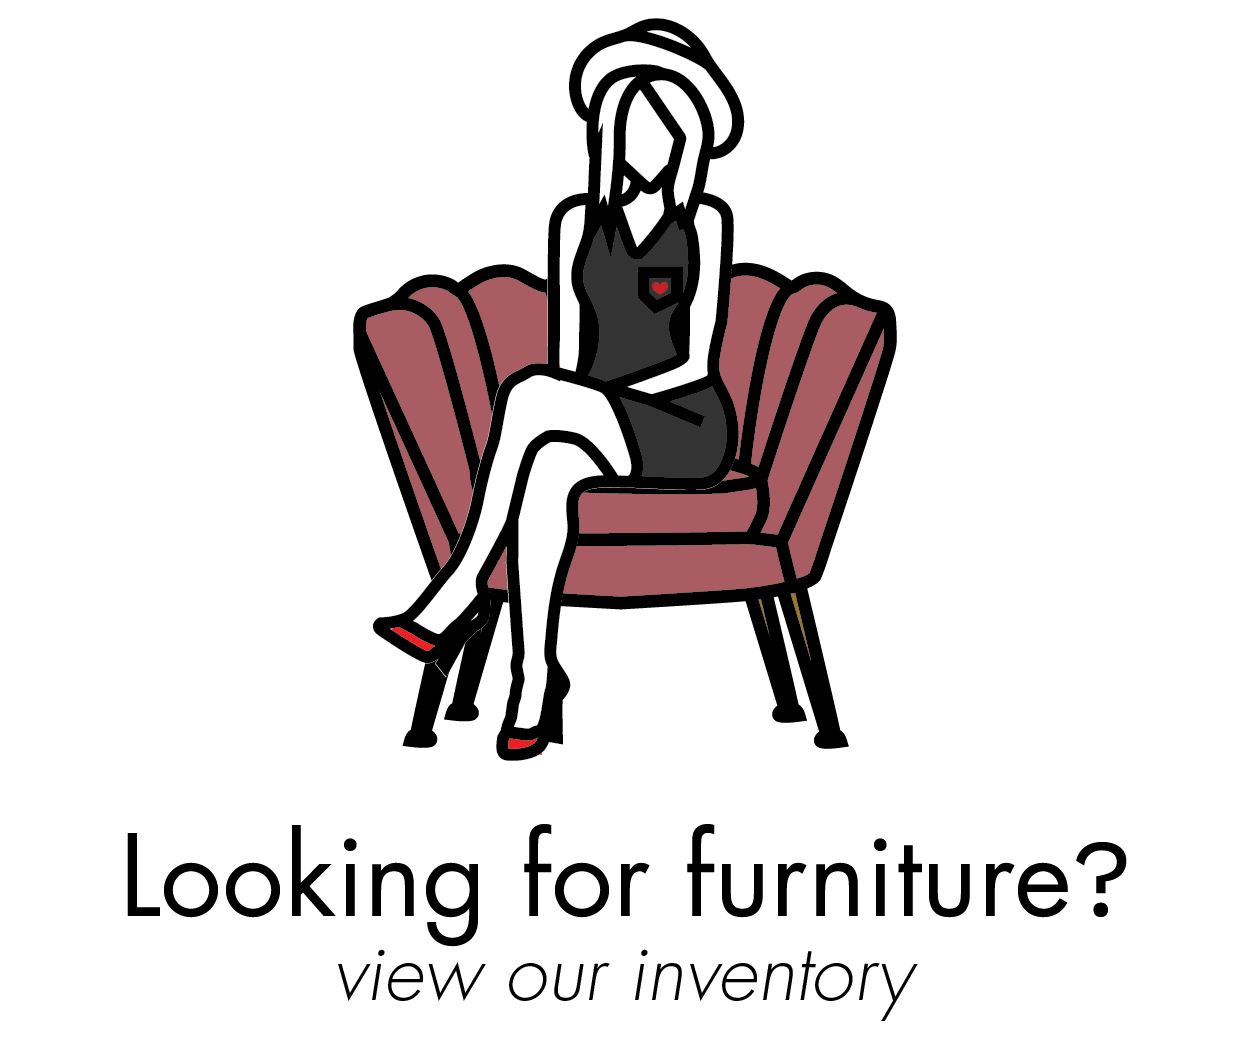 Go to Loveseat.com and view our inventory!